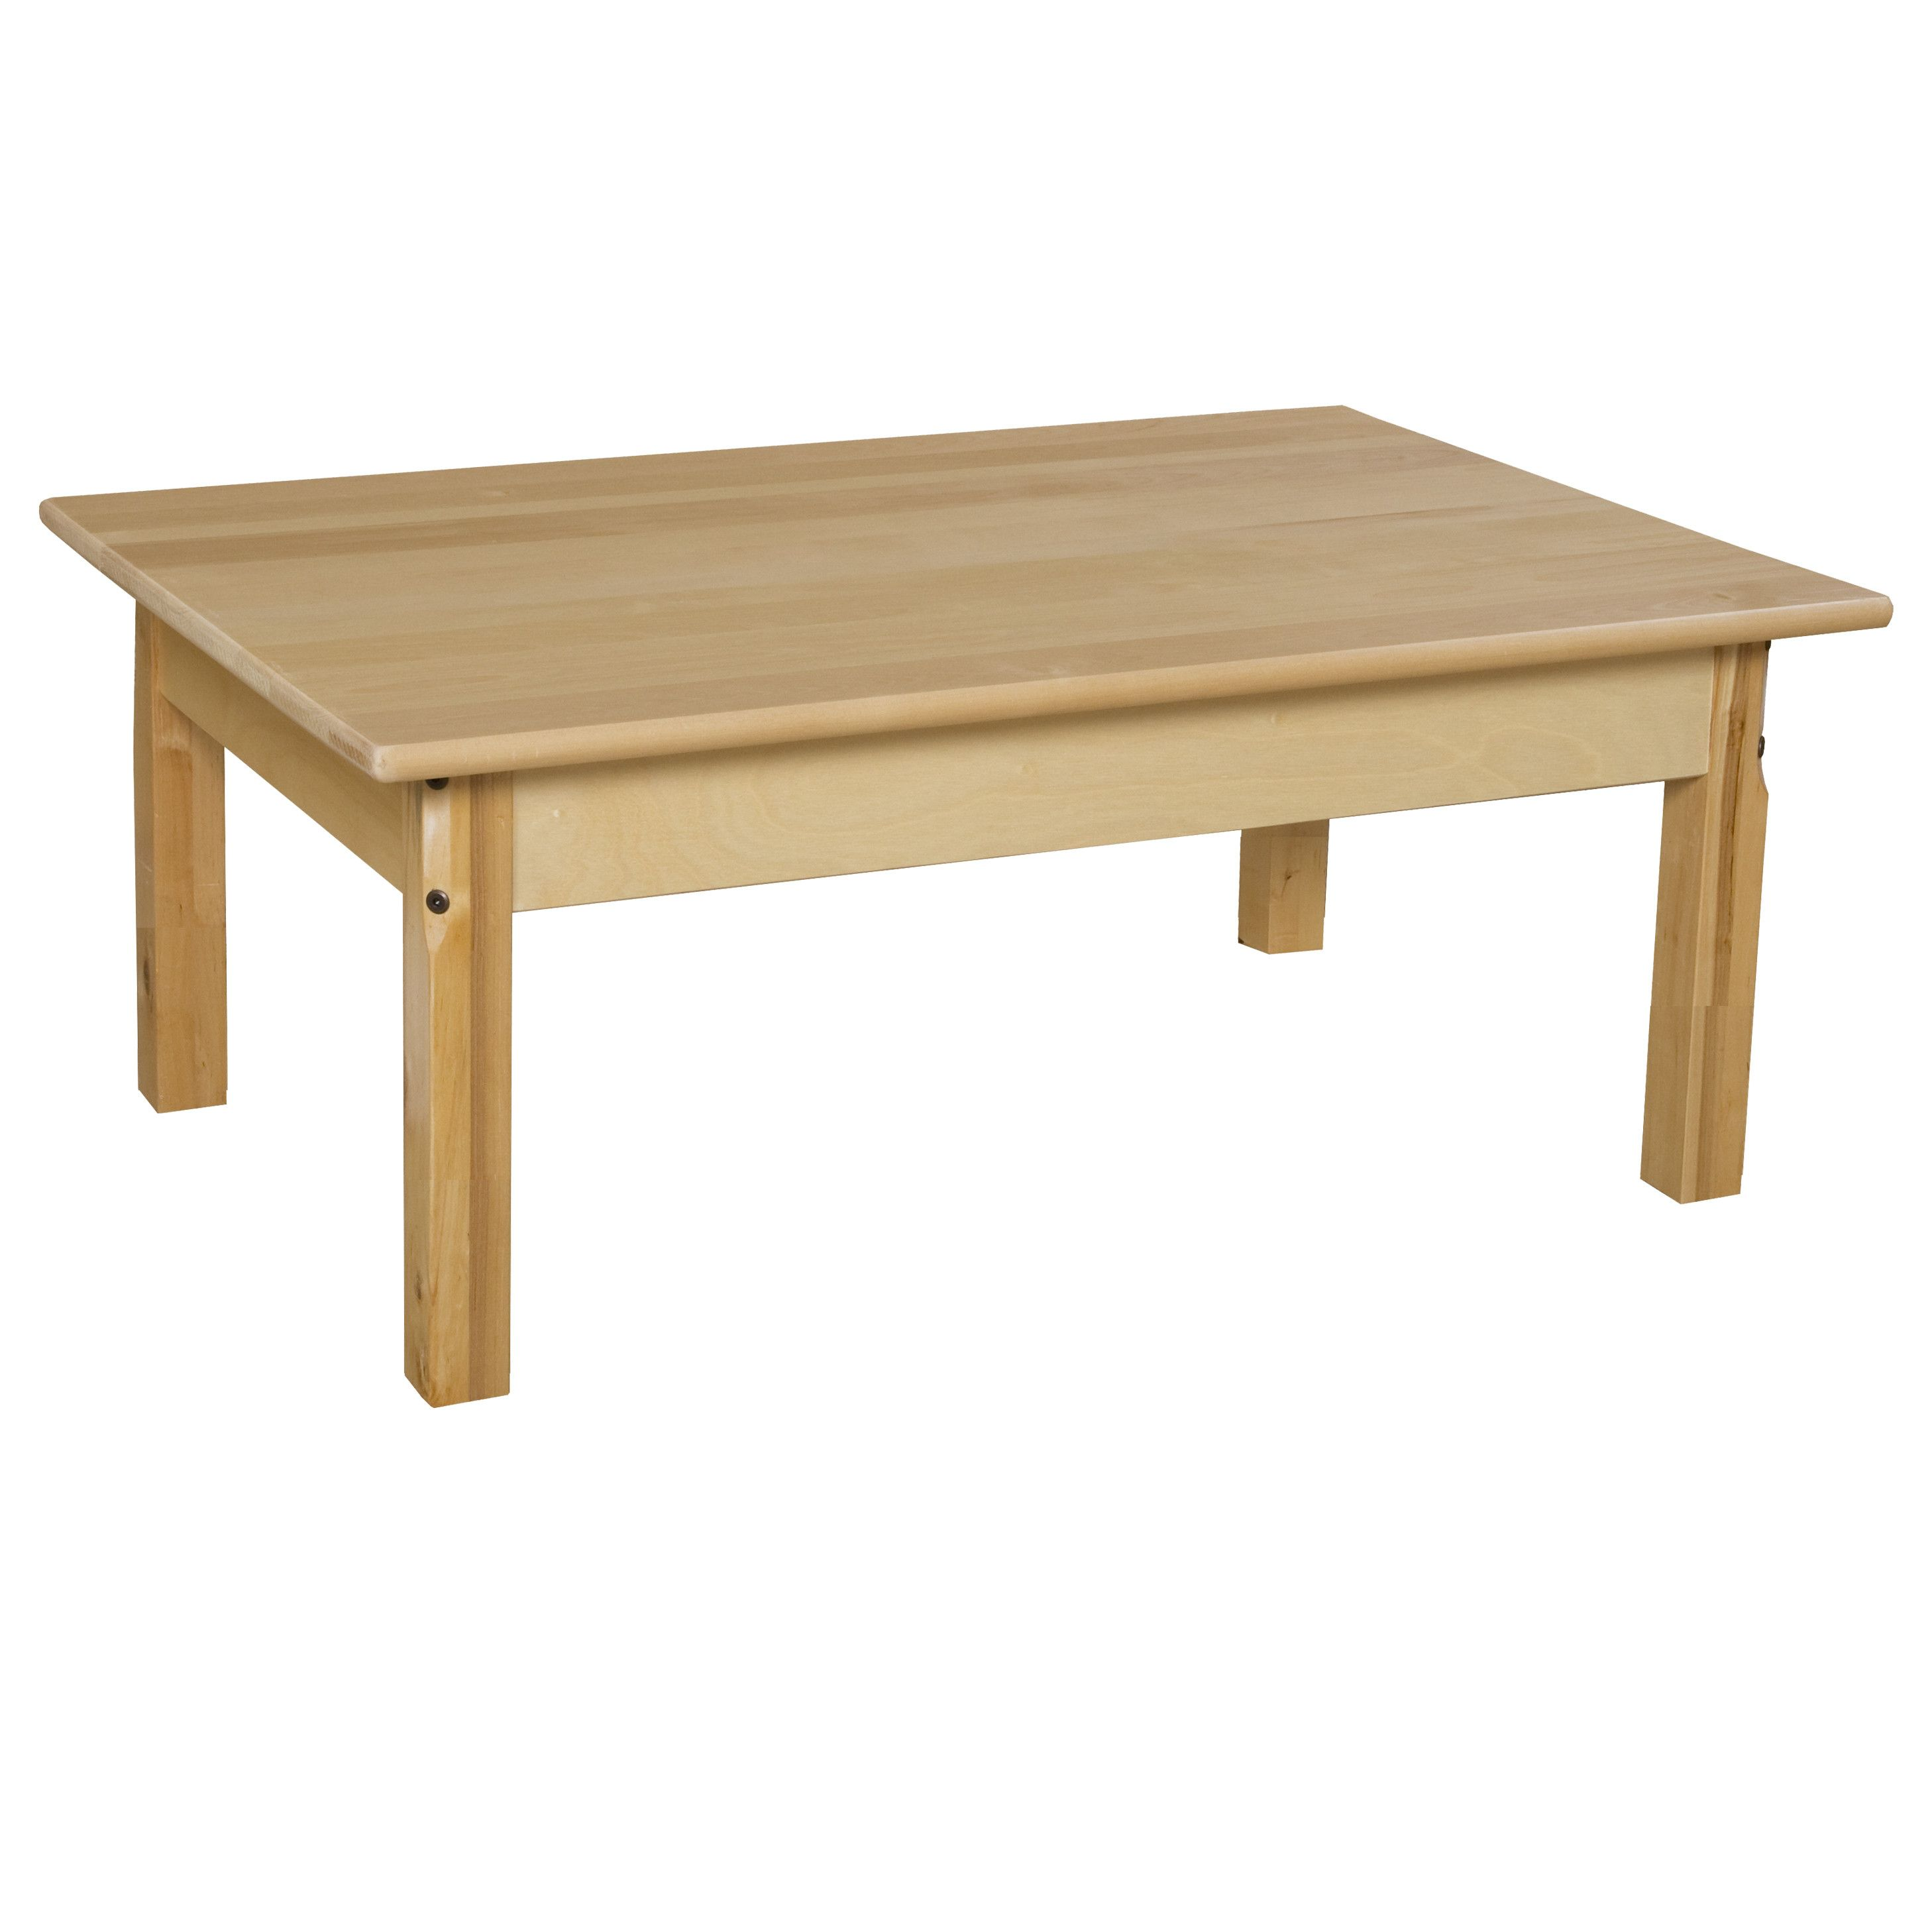 Wood Designs 36 x 24 Rectangular Activity Table gets free shipping to your business from Wayfair Supply - Great deals on all office products with an amazing selection to choose from.